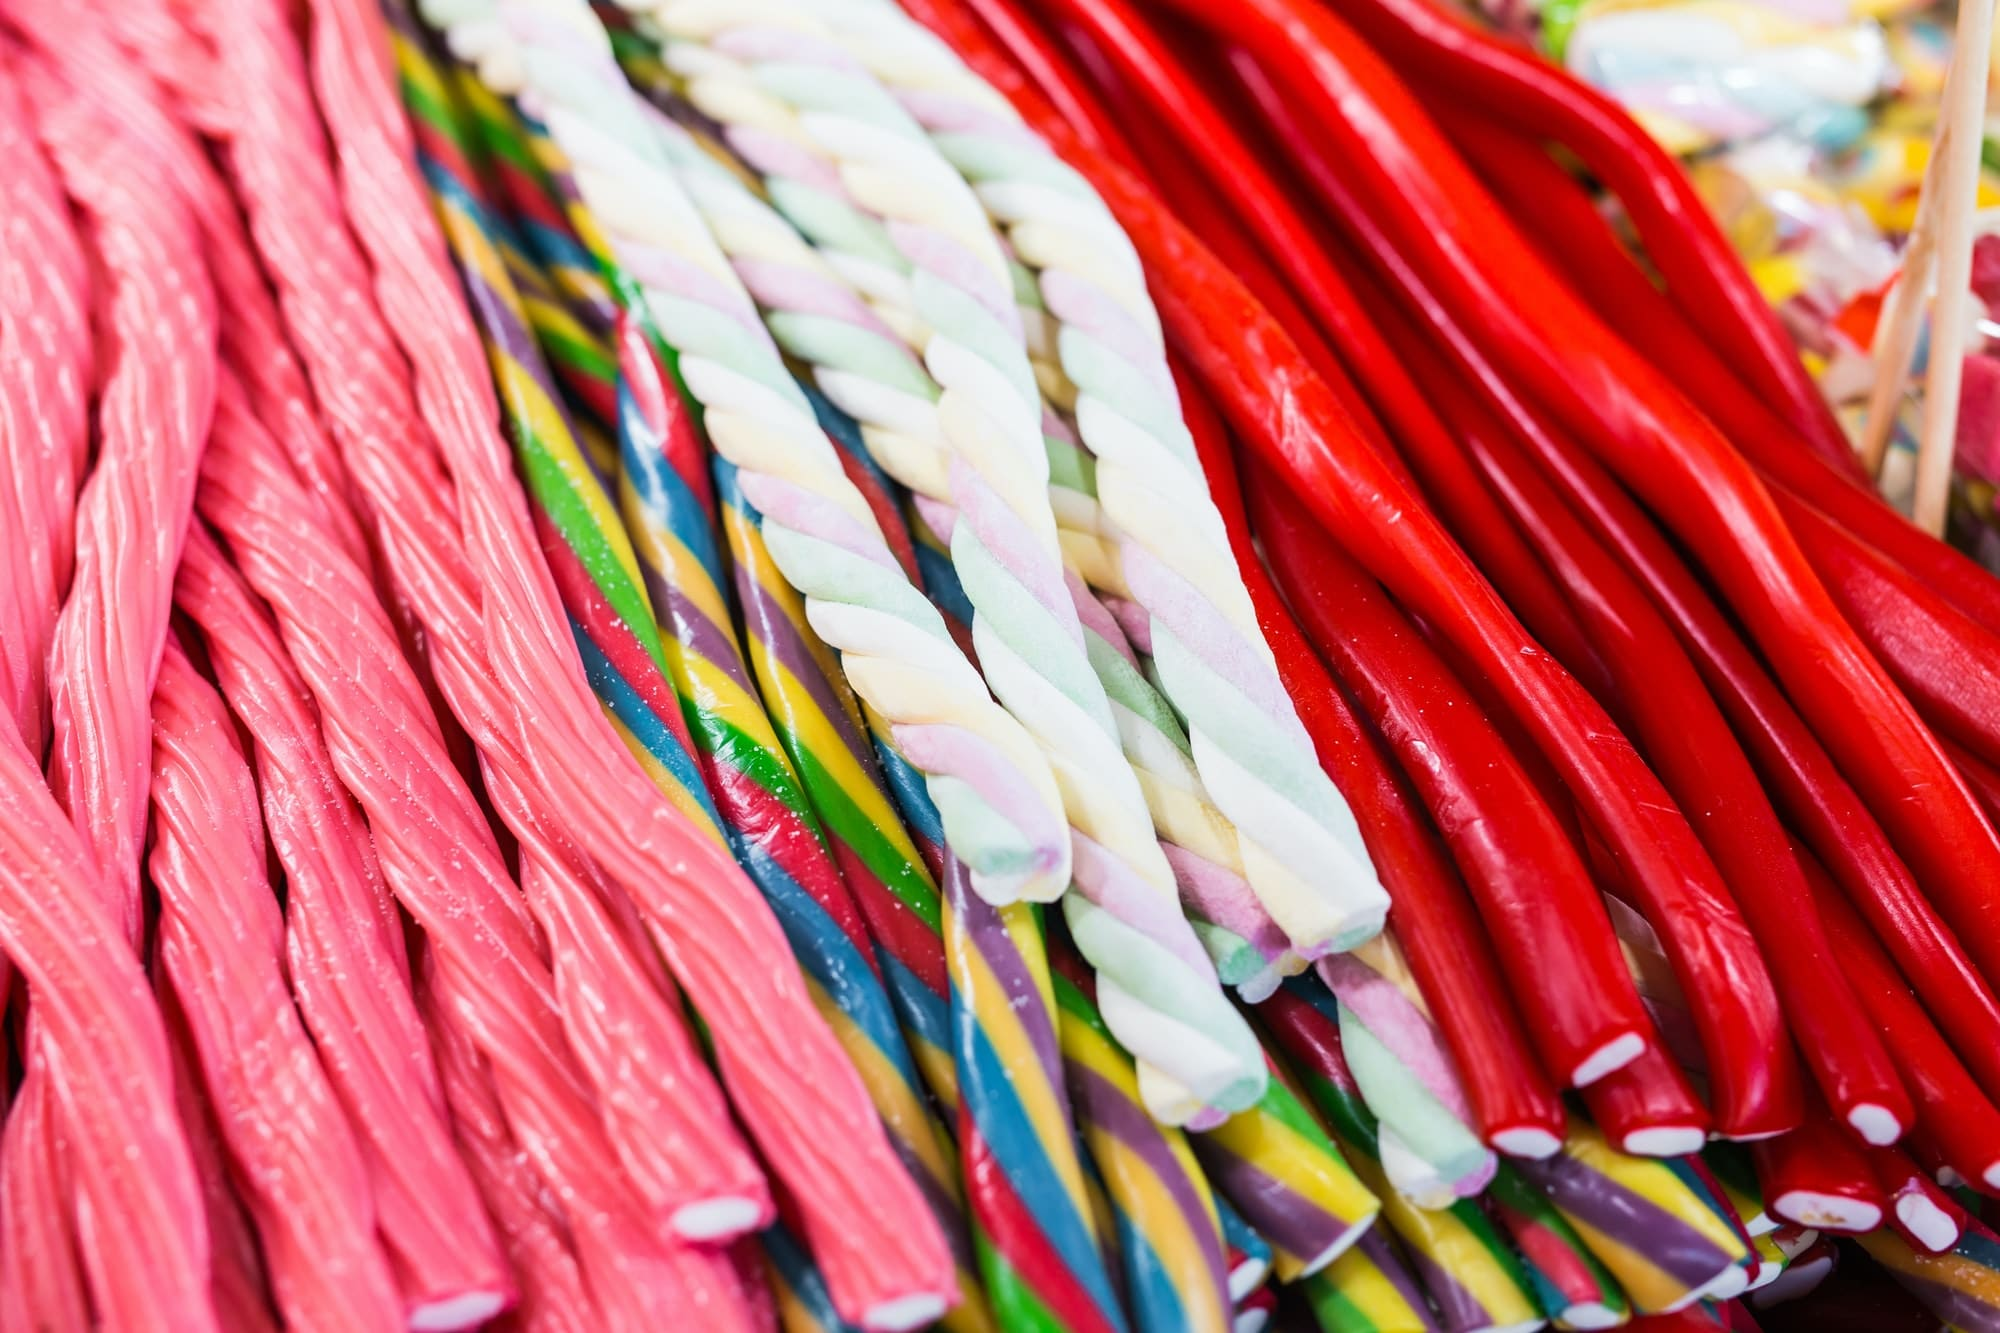 Wonderful candy sticks in any color and appearance